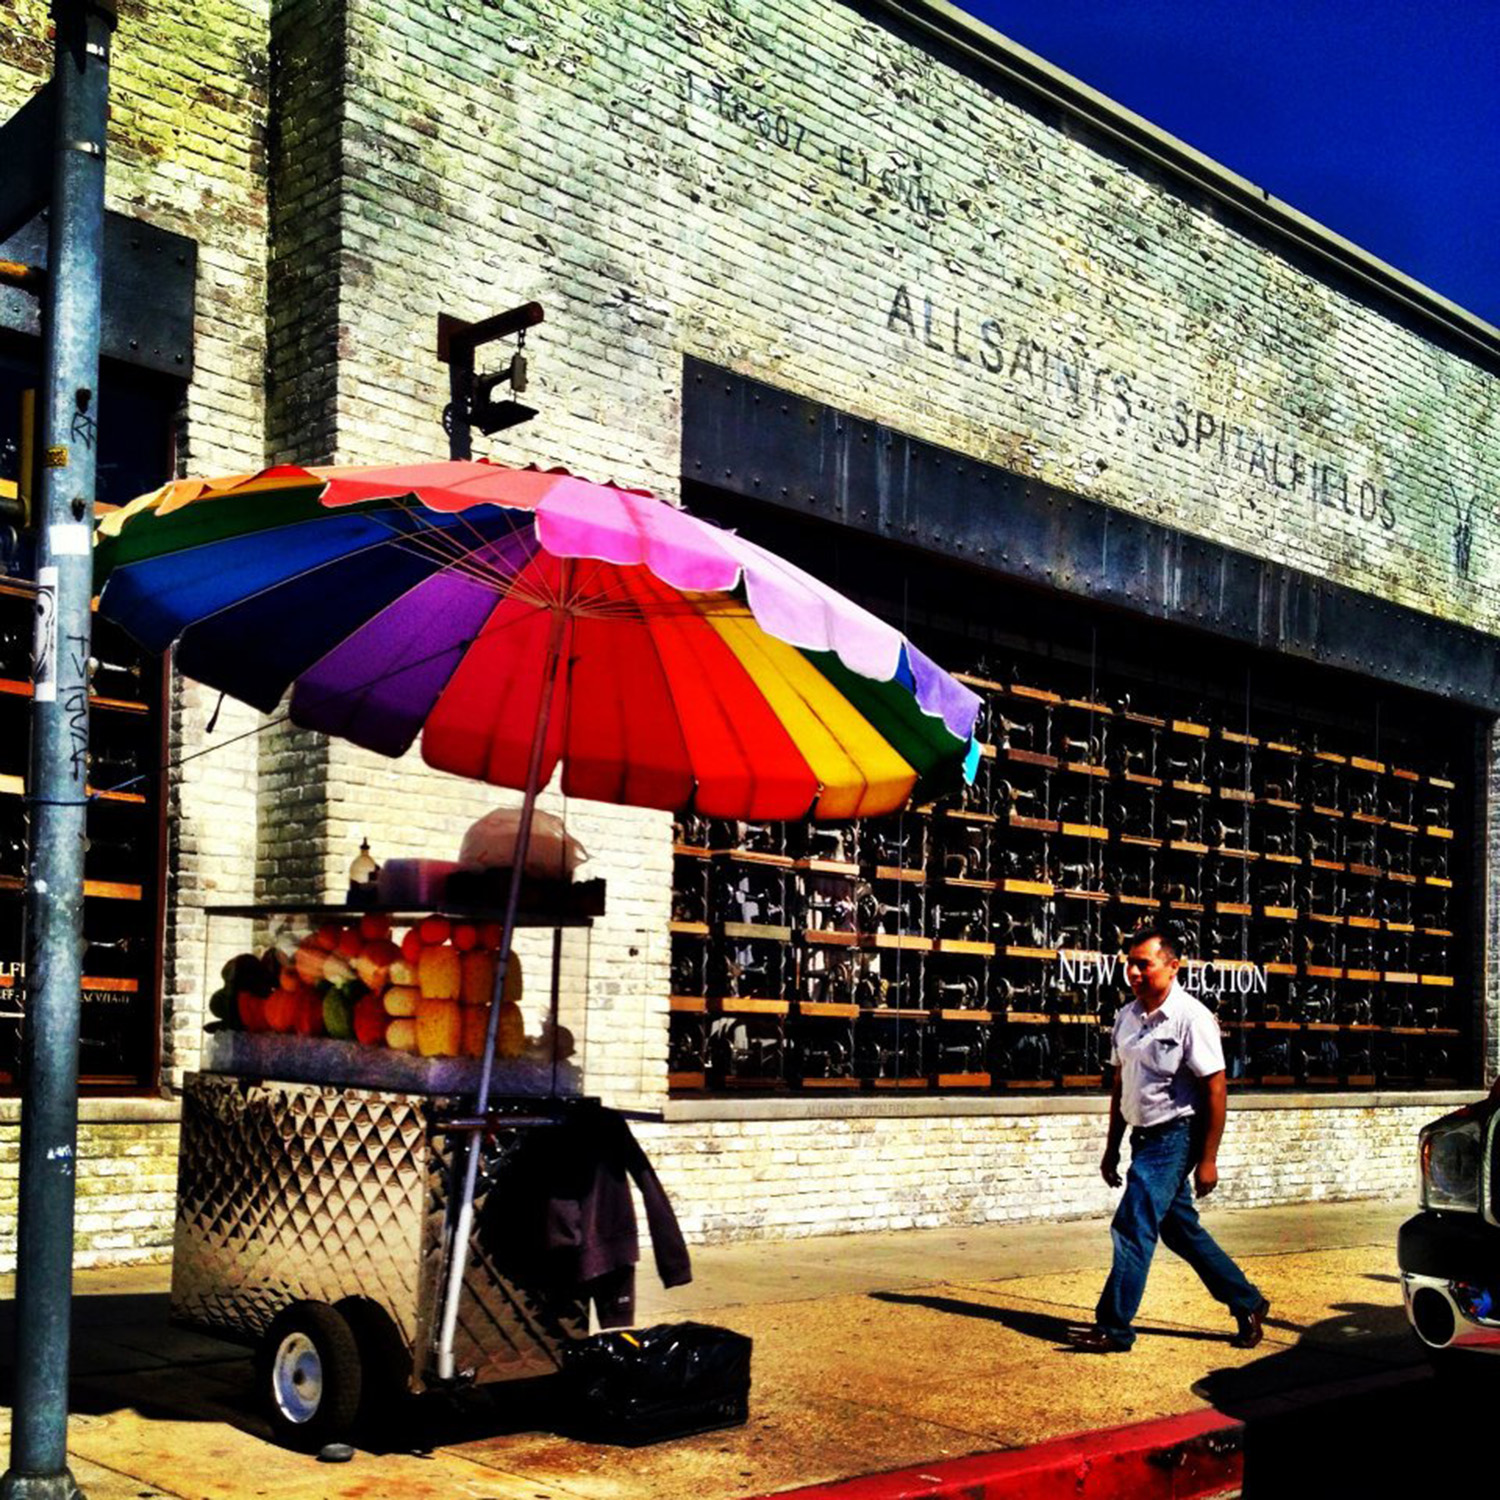 A fruit stall on Robertson shaded by a large rainbow umbrella